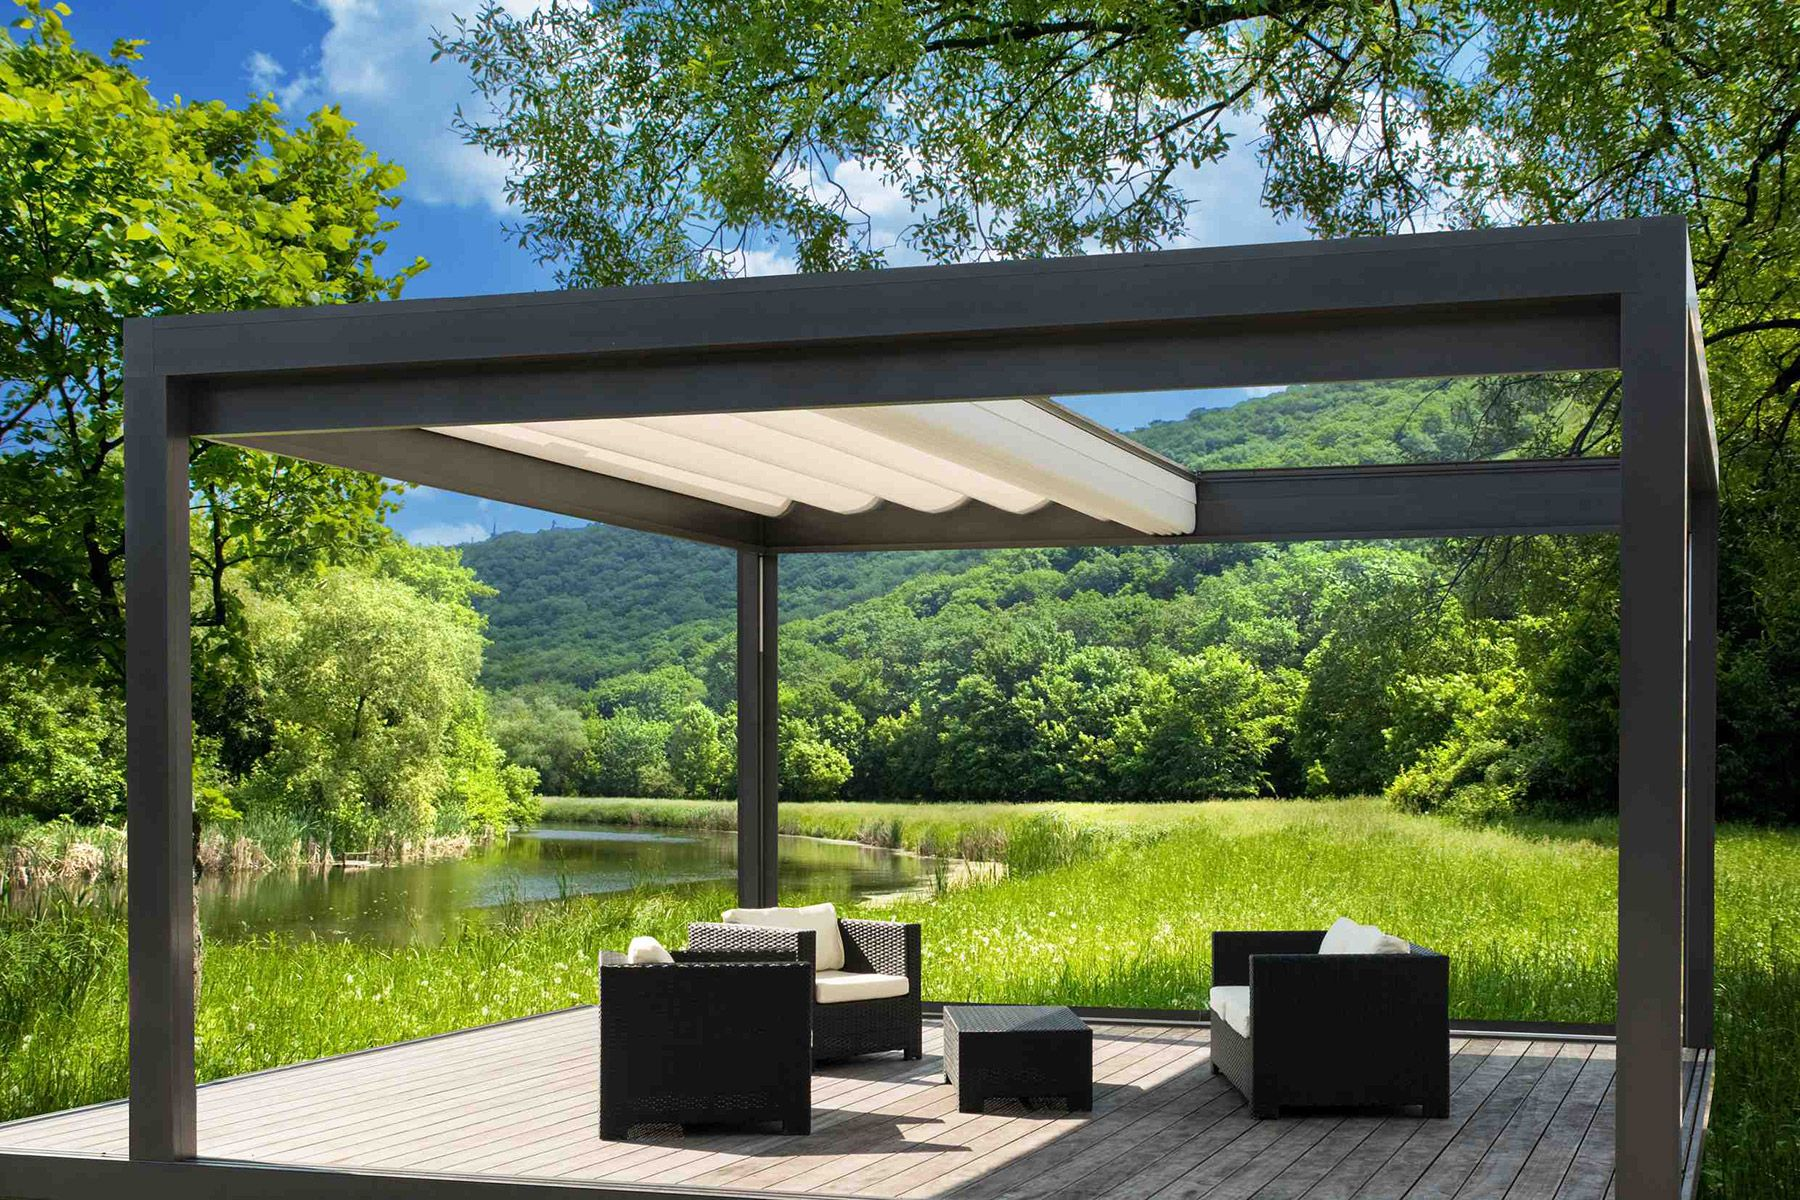 Decor Tips Retractable Canopy For Pergola Covers With Resin Wicker Outdoor Furniture And Outdoor Cushions Also Wood Aluminum Pergola Pergola Modern Pergola